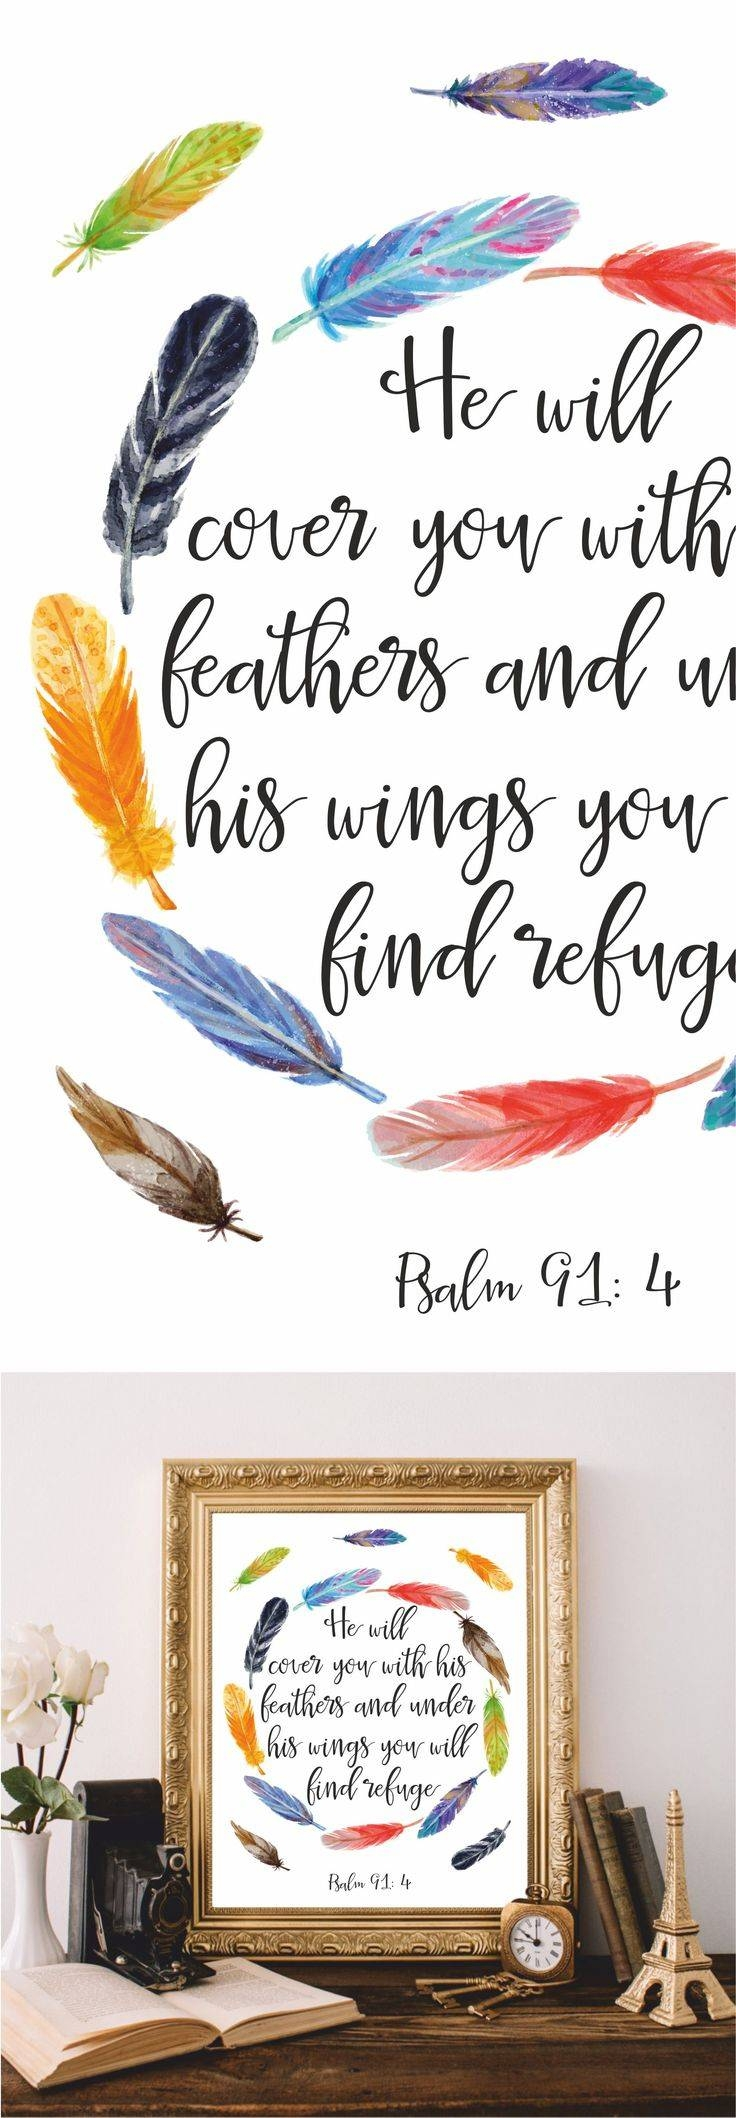 Best 25+ Scripture Wall Art Ideas On Pinterest | Bible Verse Signs For Most Recently Released Bible Verses Wall Art (Gallery 14 of 30)